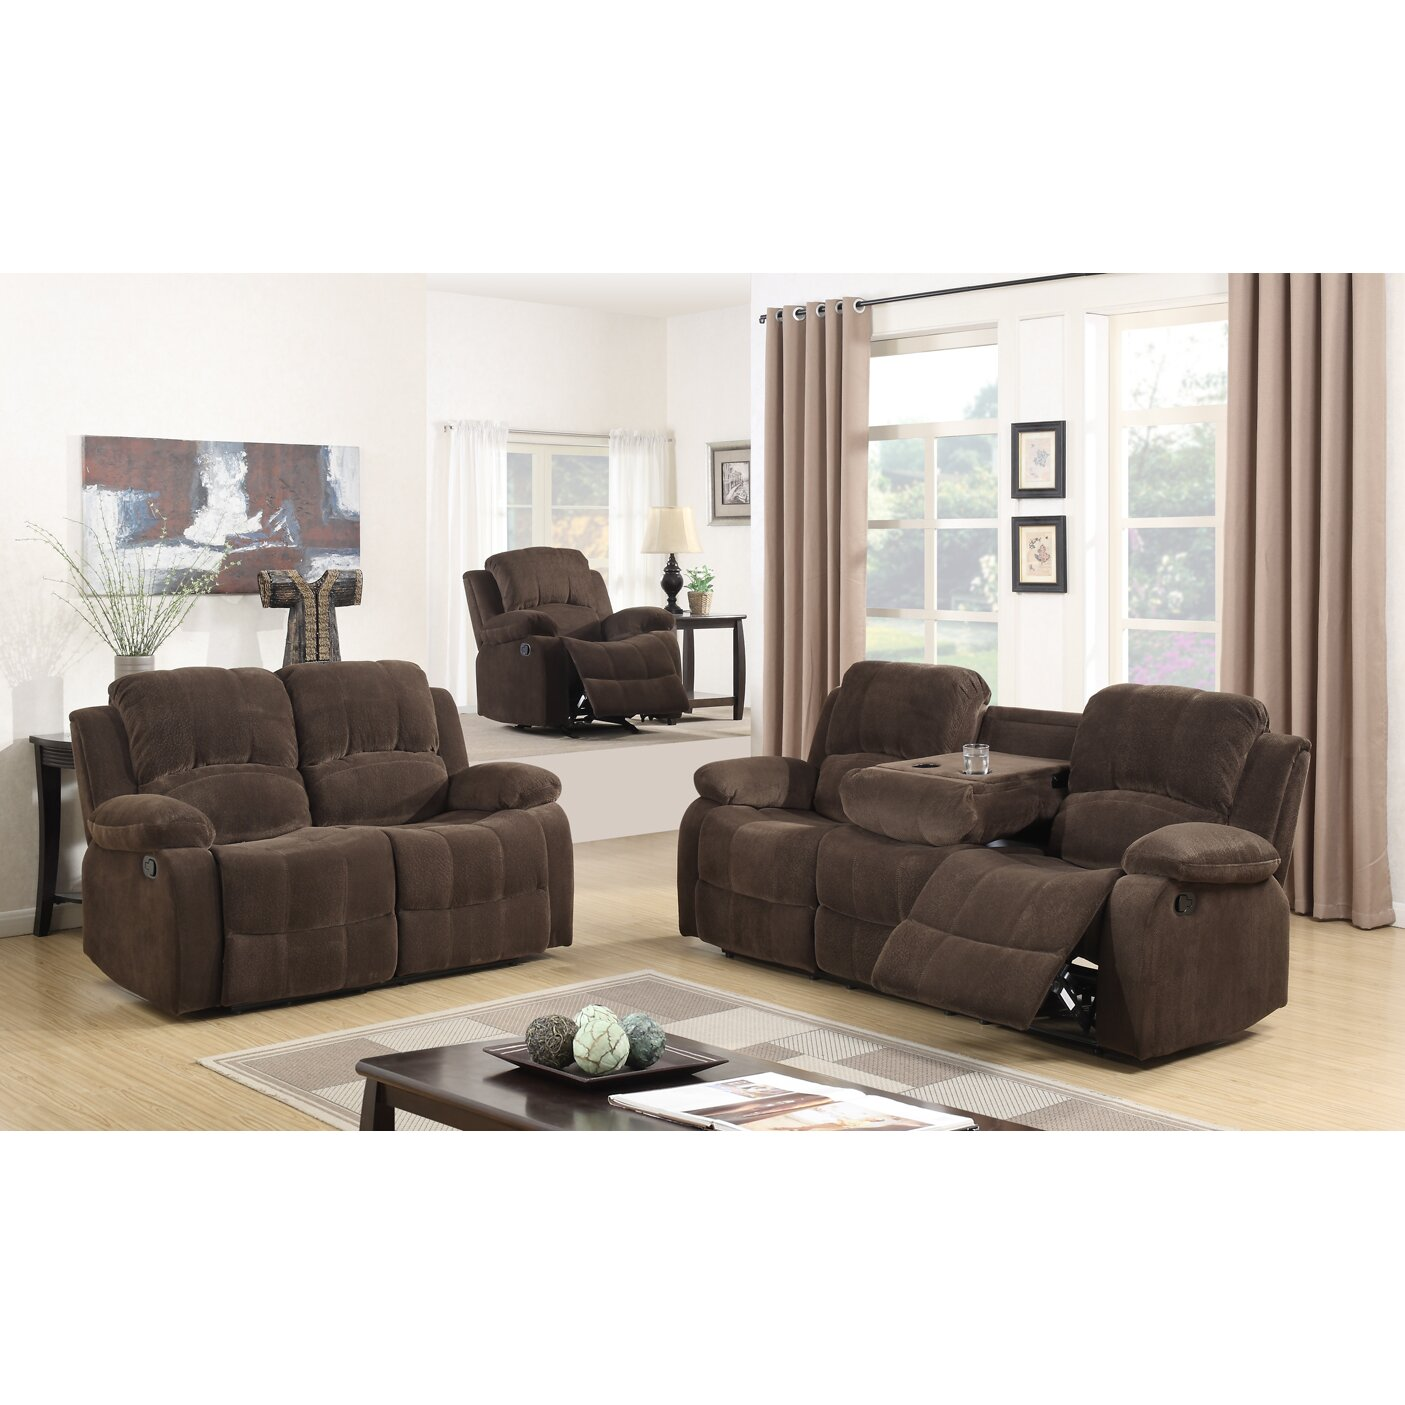 Best quality furniture fabric 3 piece recliner living room for Furniture 3 rooms for 1999